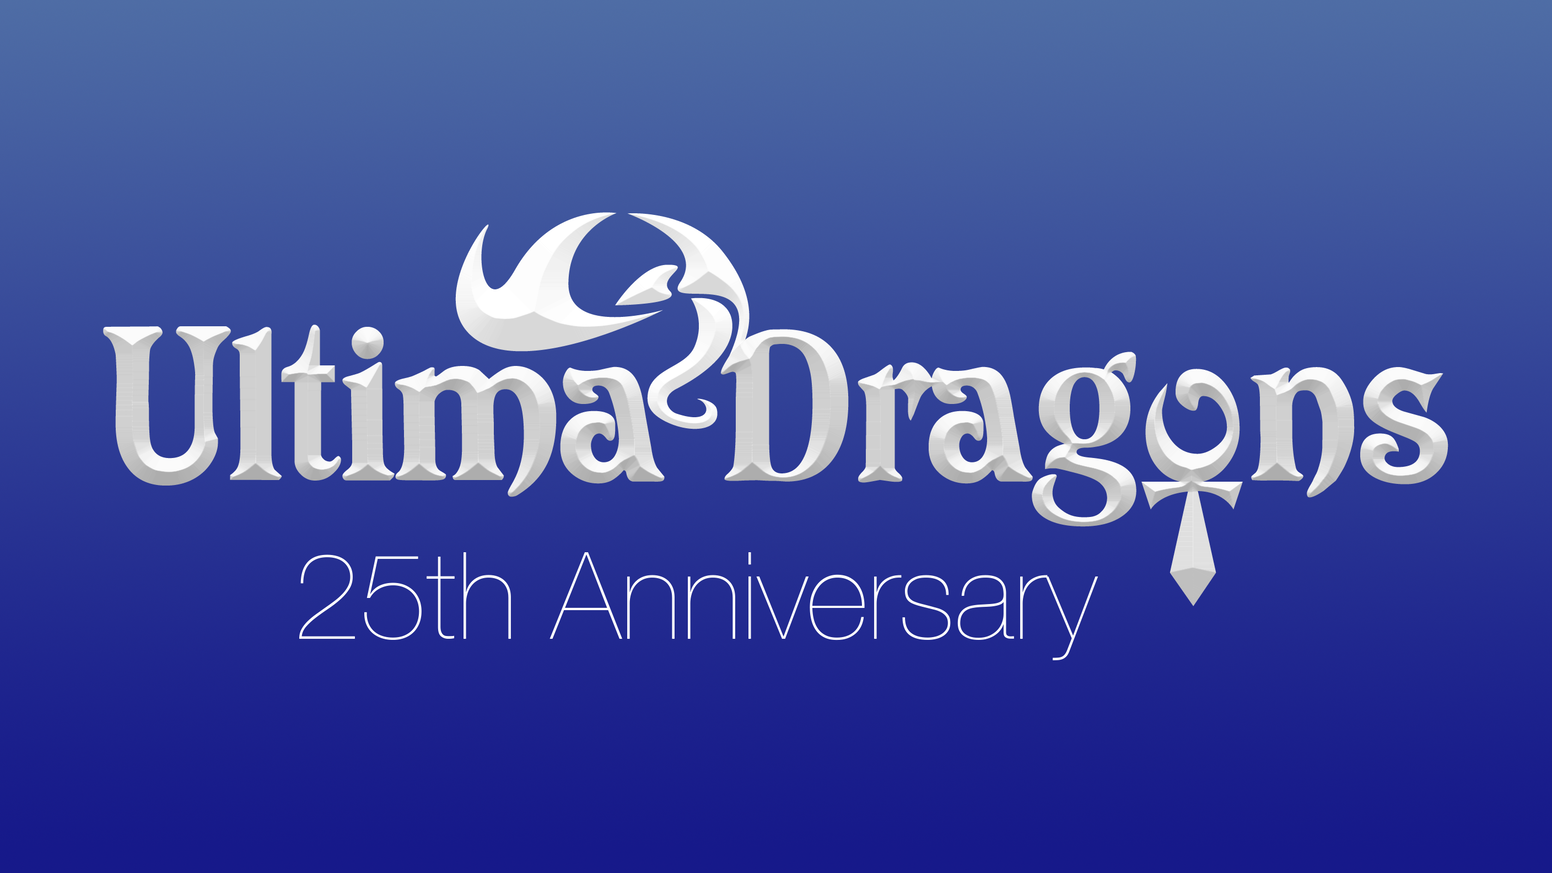 Join the Ultima Dragons as they celebrate twenty-five years of one of the oldest online fan-created gaming clubs!